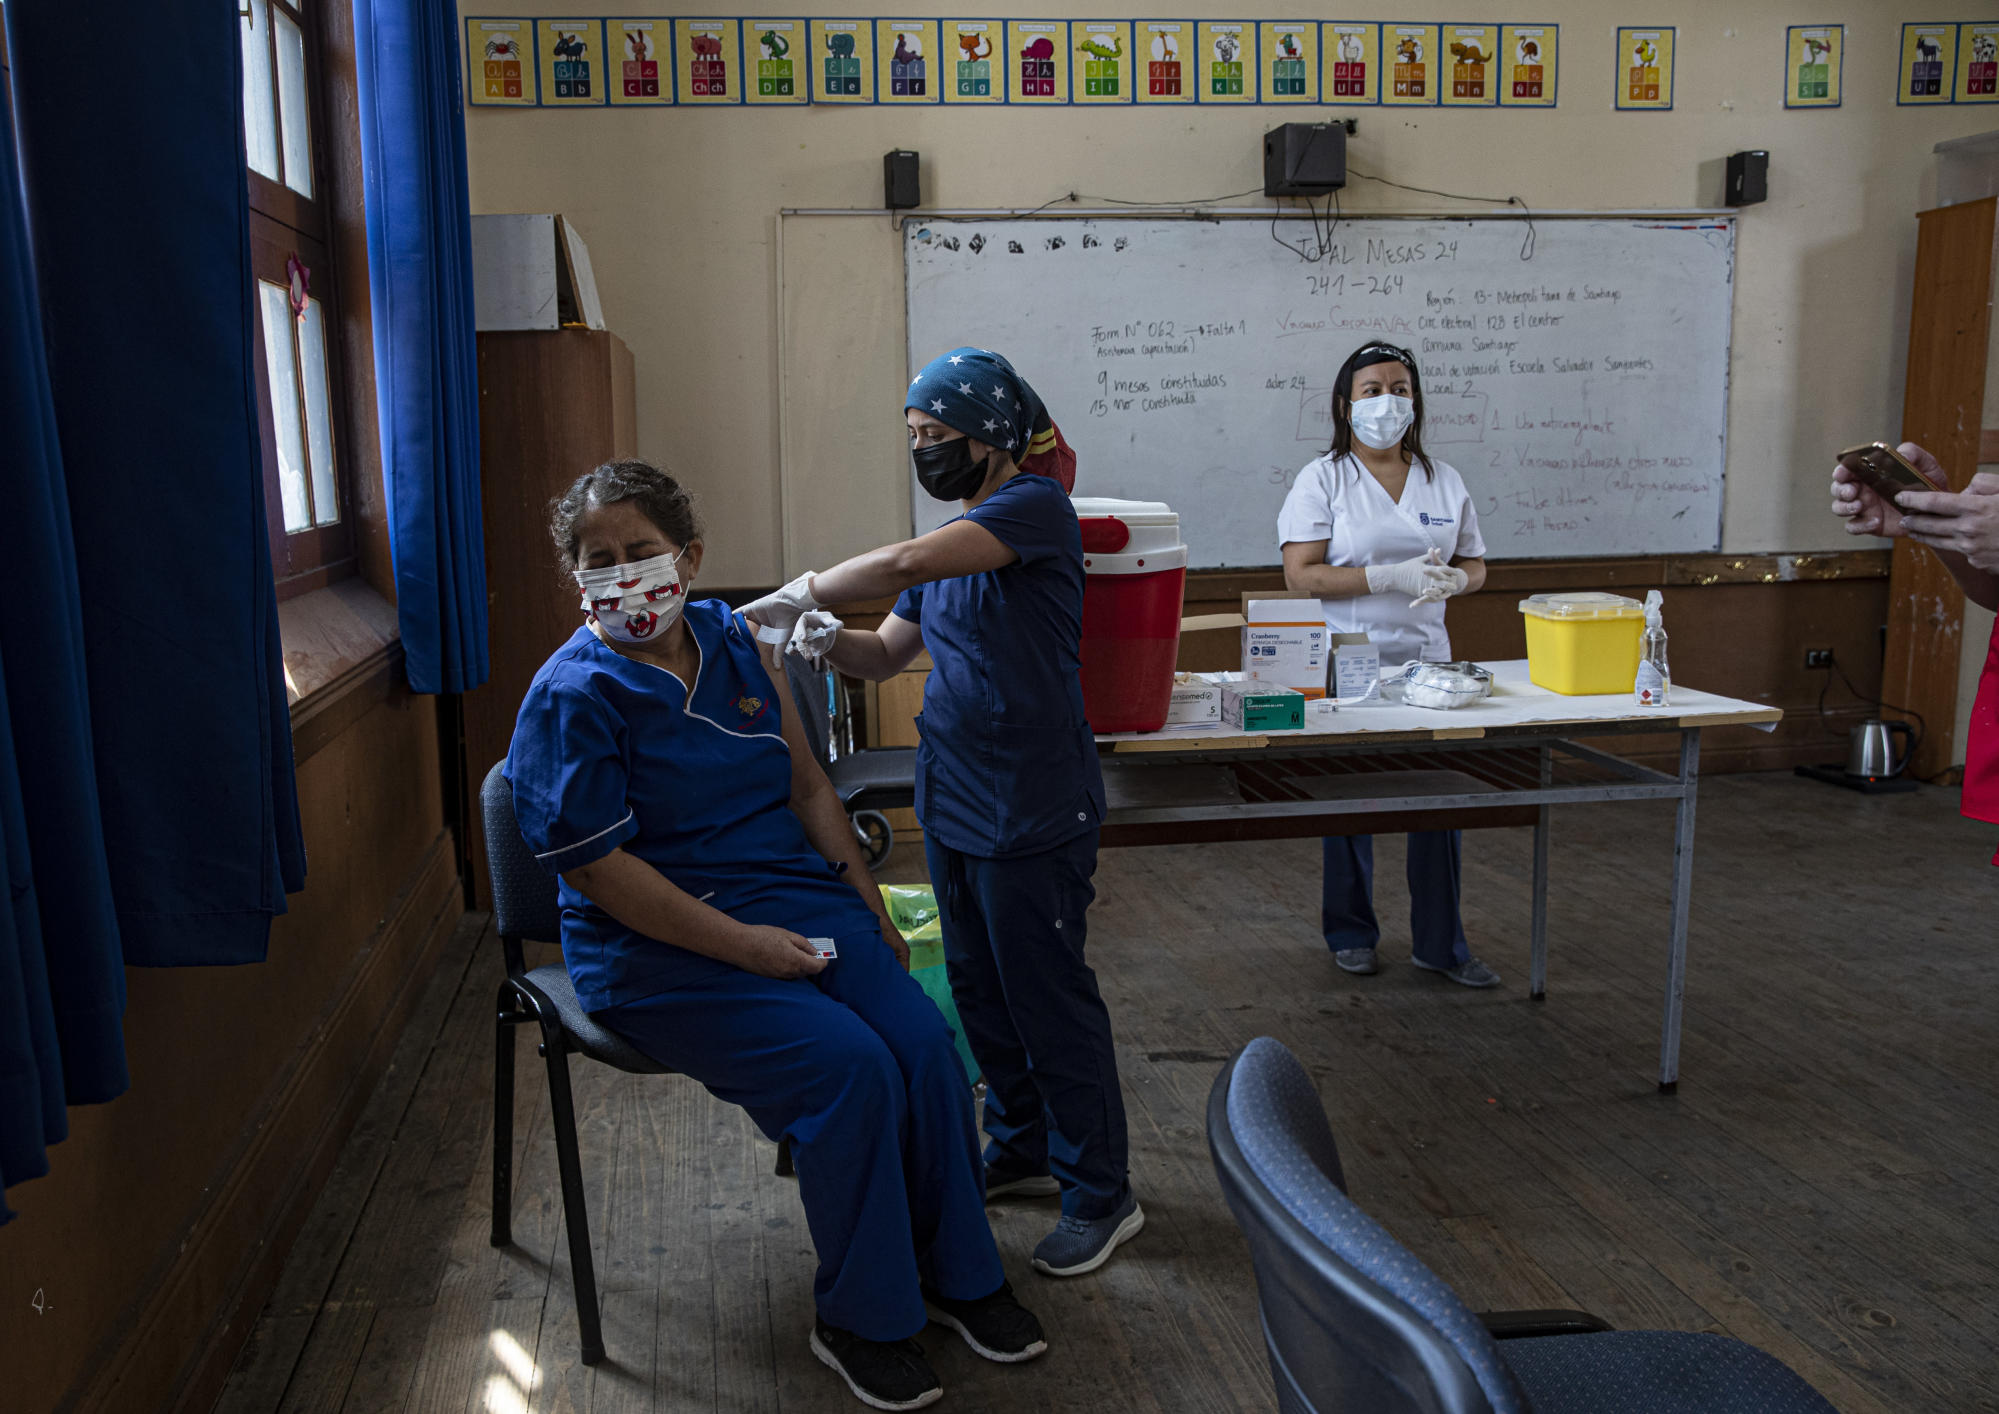 Large study in Chile reveals that Chinese vaccine reduces COVID deaths